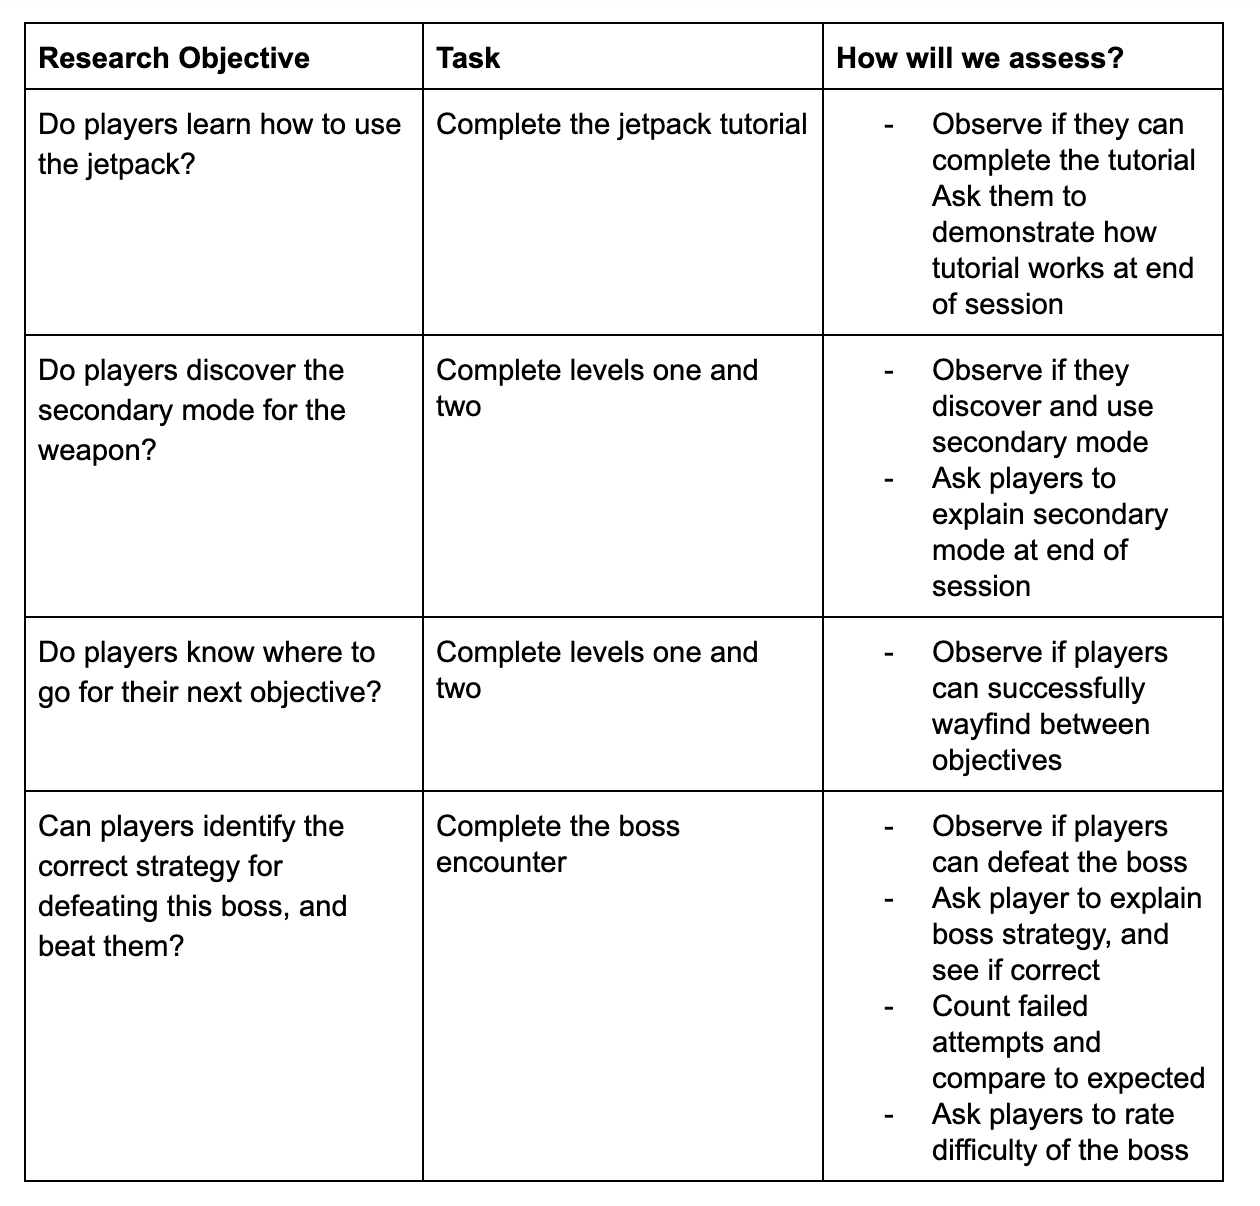 A table with three columns - research objectives, matched to task, match to how it will be assessed